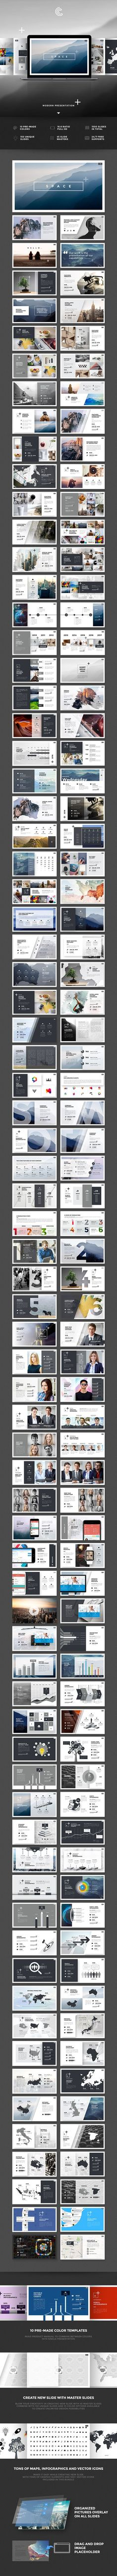 Space PowerPoint - PowerPoint Templates Presentation Templates. Download here: https://graphicriver.net/item/space-powerpoint/20165648?s_rank=4&ref=7h10